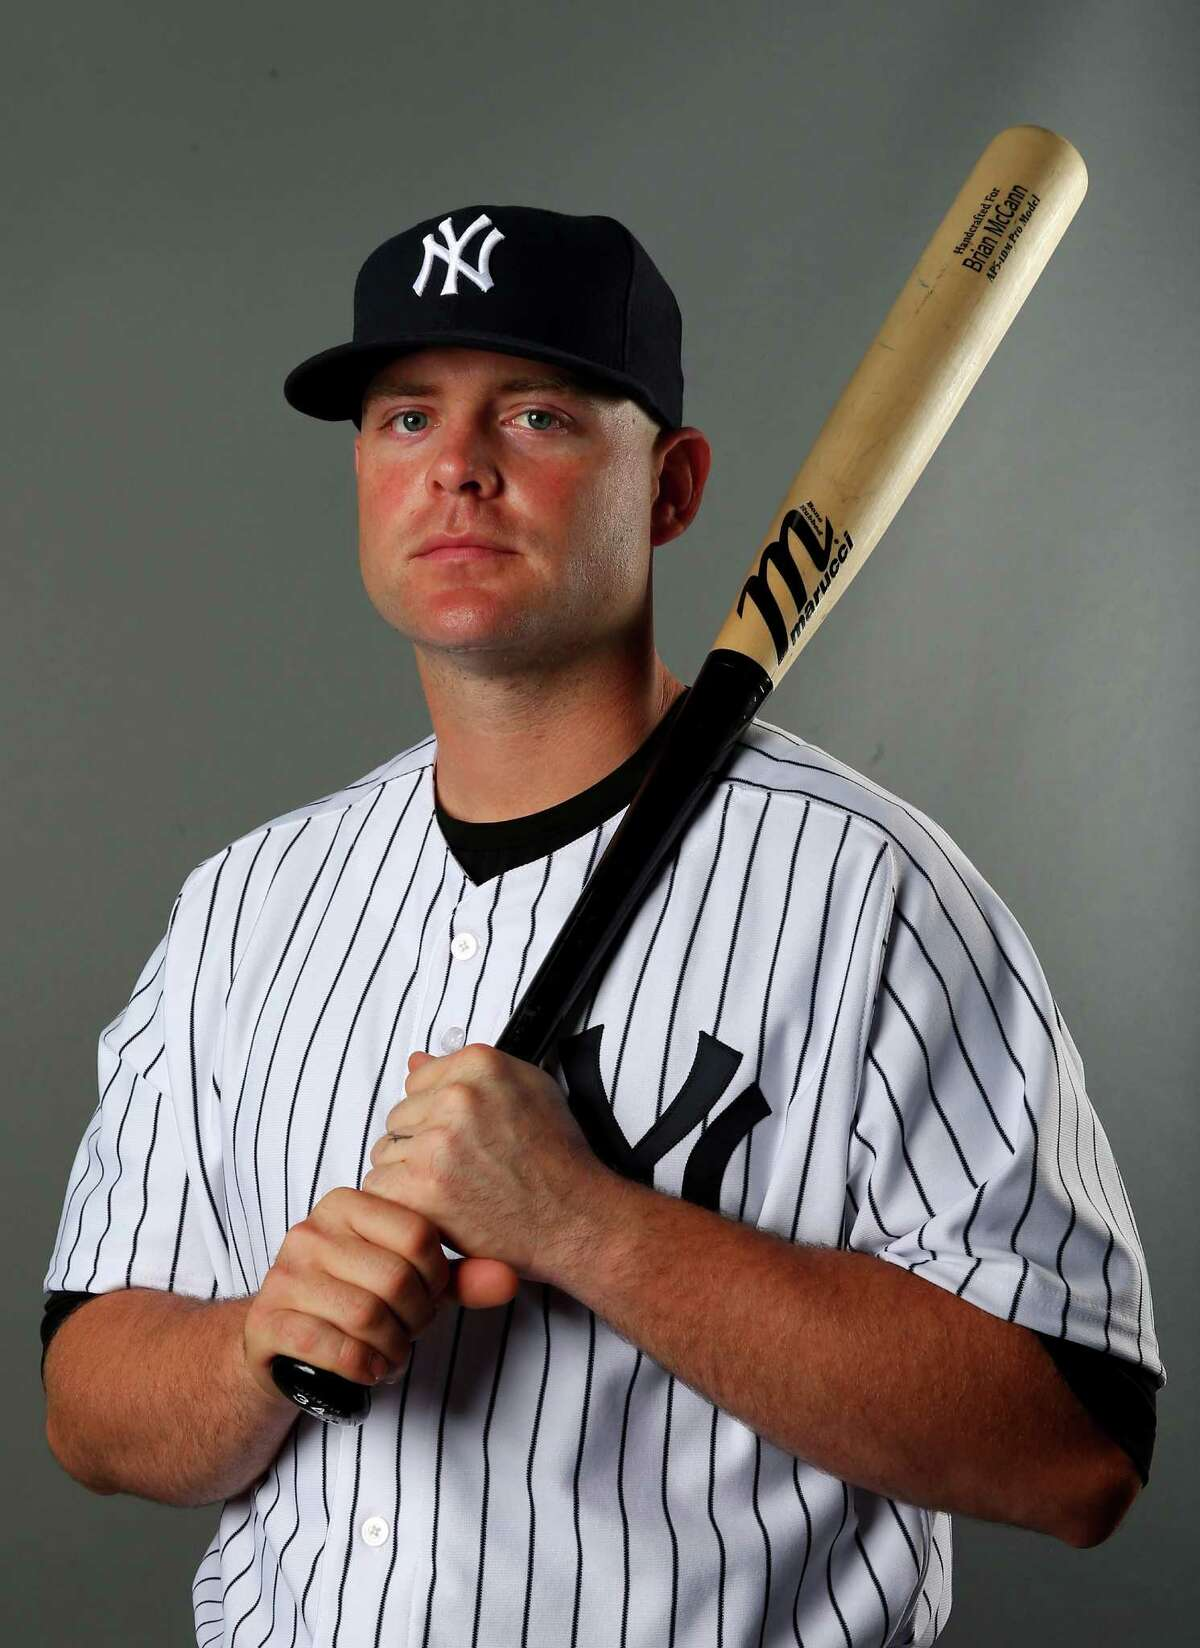 TAMPA, FL - FEBRUARY 22: Brian McCann #34 of the New York Yankees poses for a portrait during New York Yankees Photo Day on February 22, 2014 at George M. Steinbrenner Field in Tampa, Florida. (Photo by Elsa/Getty Images)